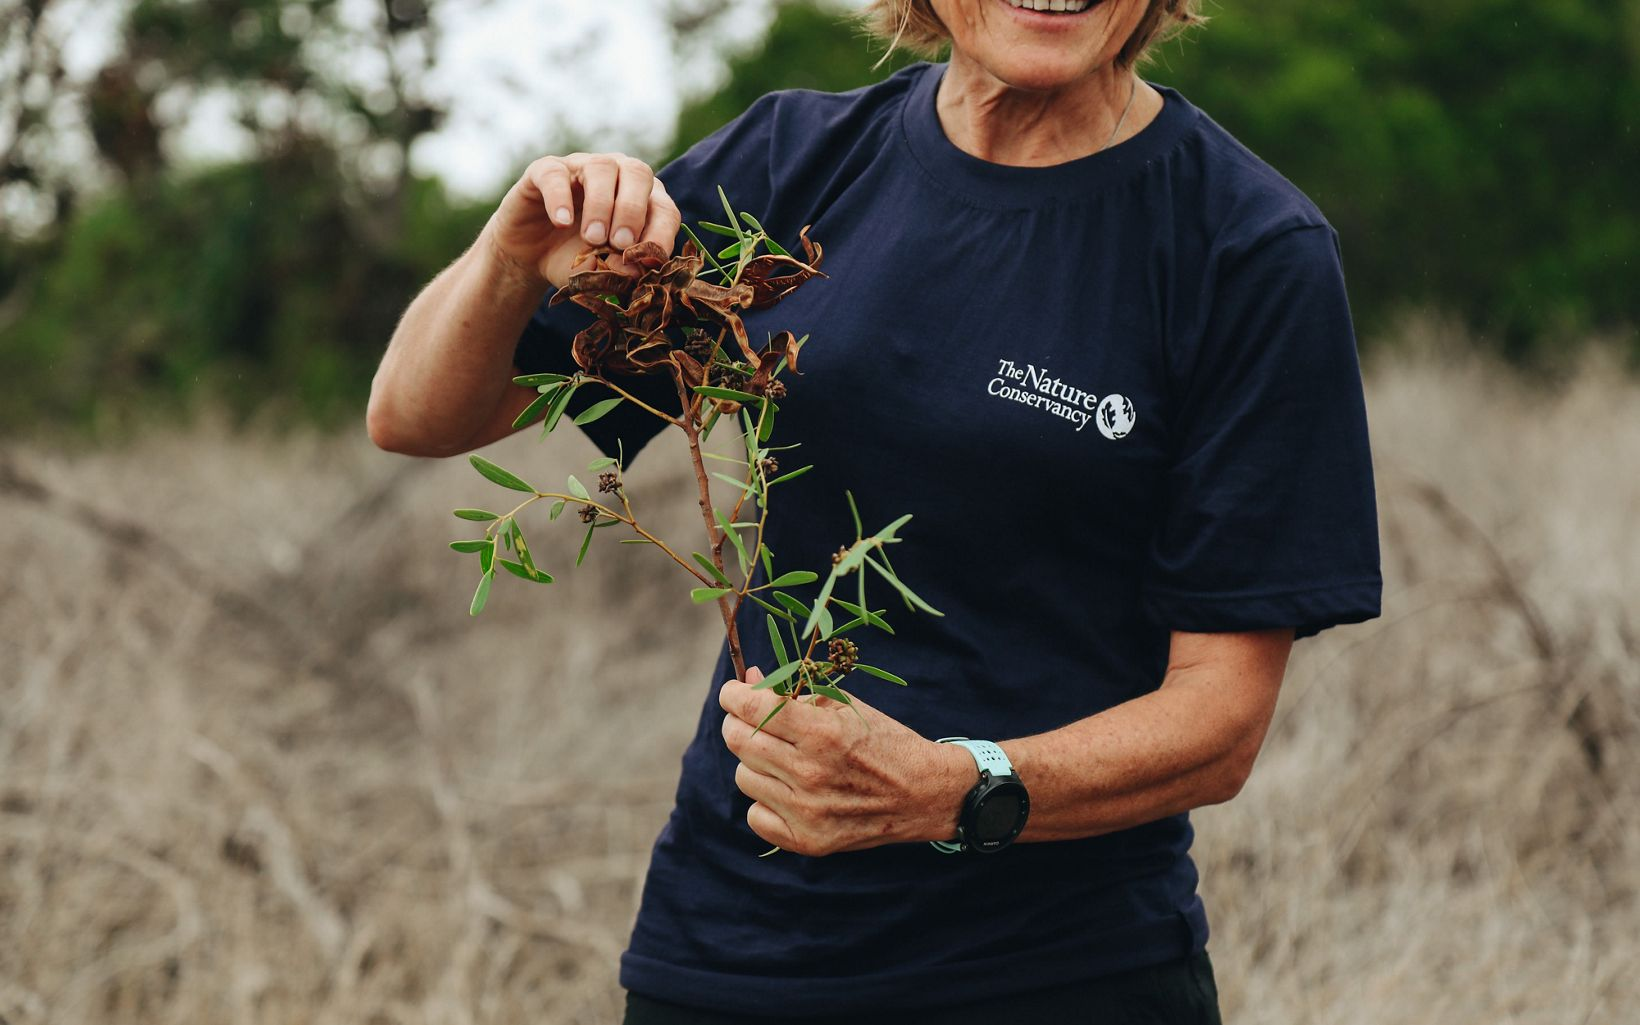 Clearing invasive plants